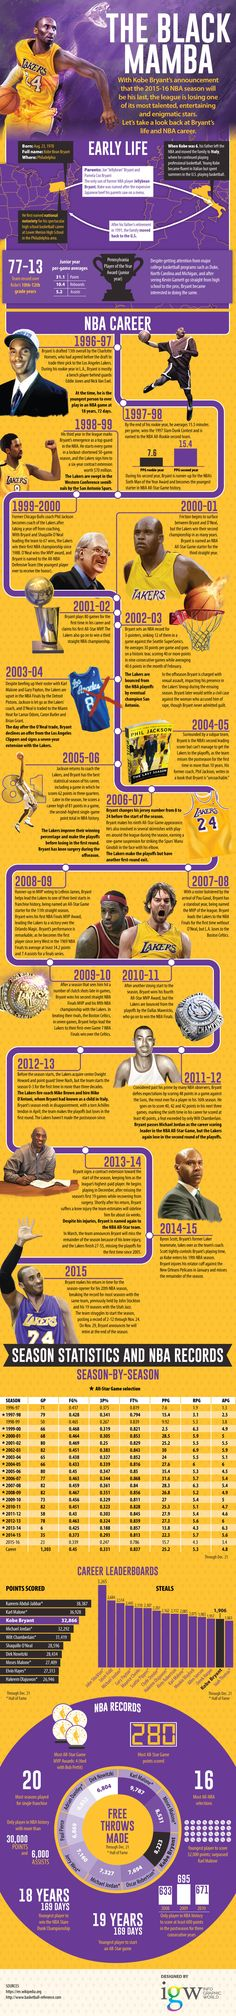 """Kobe understood what dedication and hard work meant! """"From humble beginnings to becoming one of the most recognized faces in the NBA, here's our rendition of the Kobe Bryant """"look back"""". Basketball Legends, Sports Basketball, College Basketball, Basketball Stuff, Kobe Bryant Retirement, Lakers Team, Kobe Bryant Black Mamba, Lakers Kobe Bryant, Sports Pictures"""